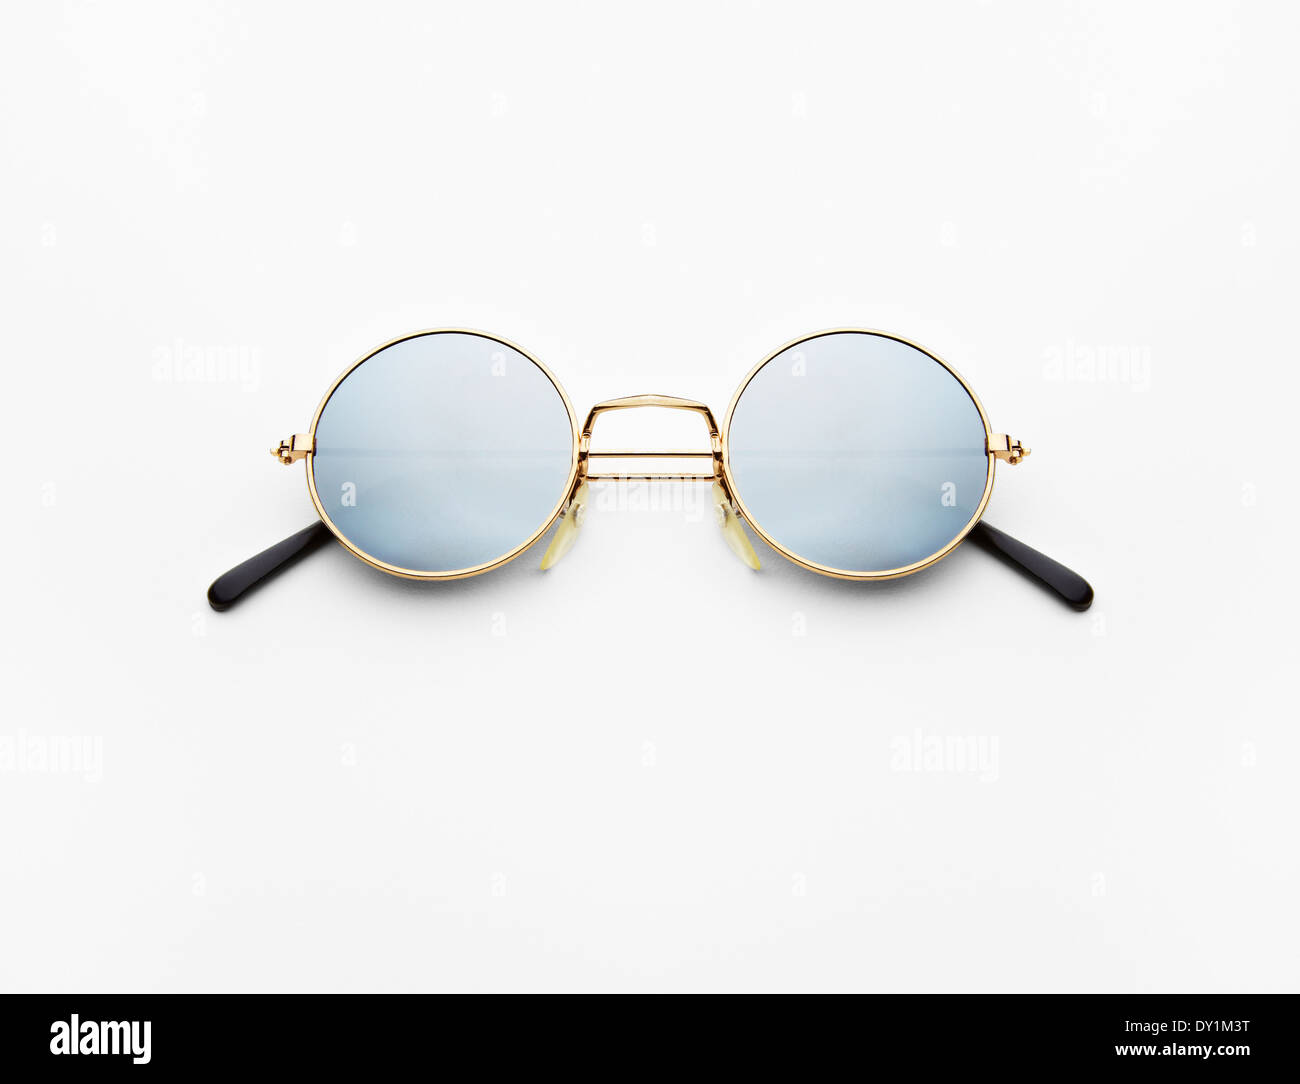 2f3d84188cdfe Round mirrored sunglasses with gold rims still life photograph against a  white background - Stock Image